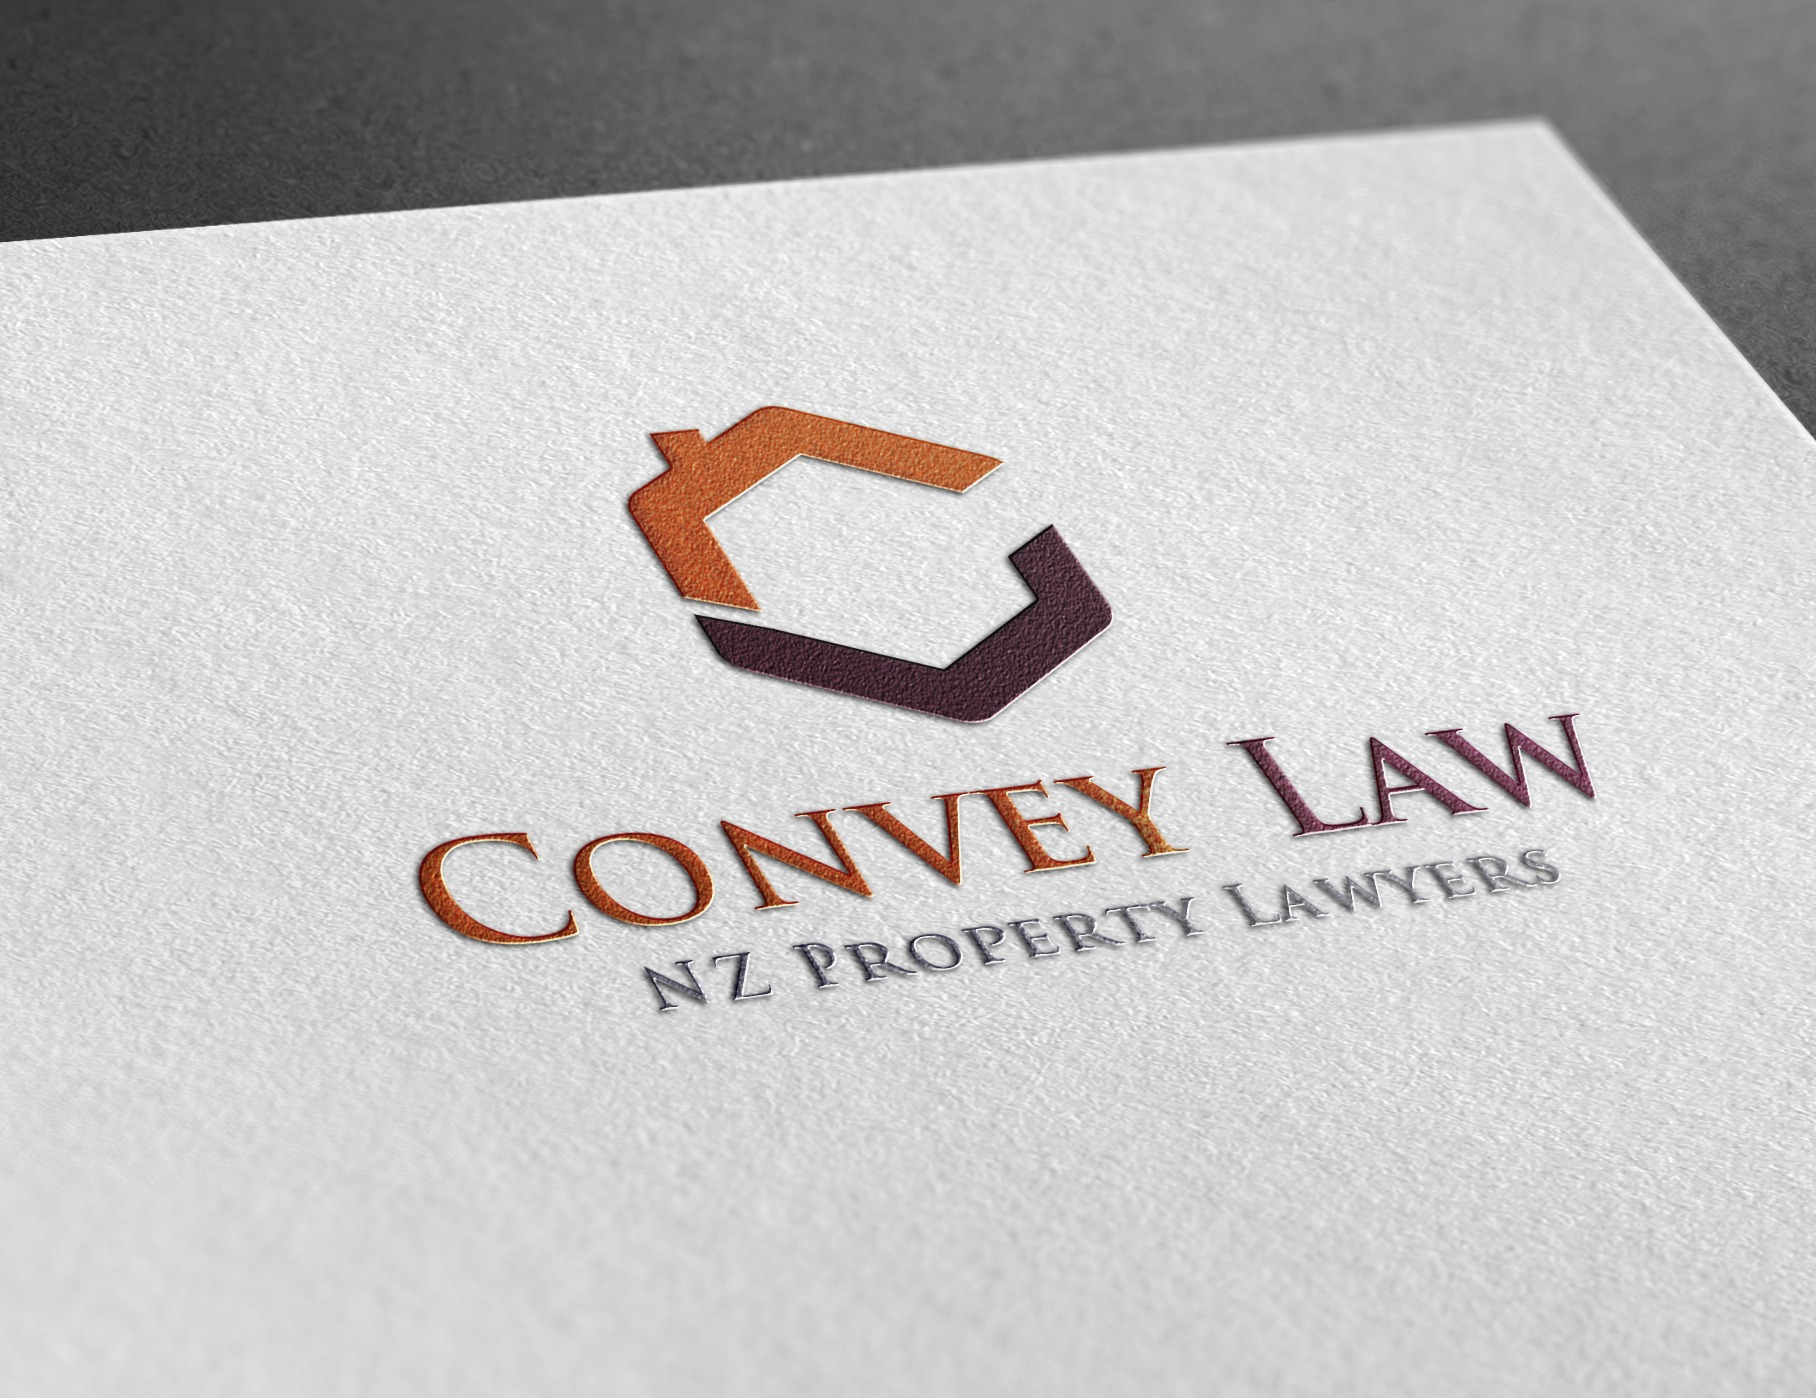 Conveyancing Solicitors - Convey Law